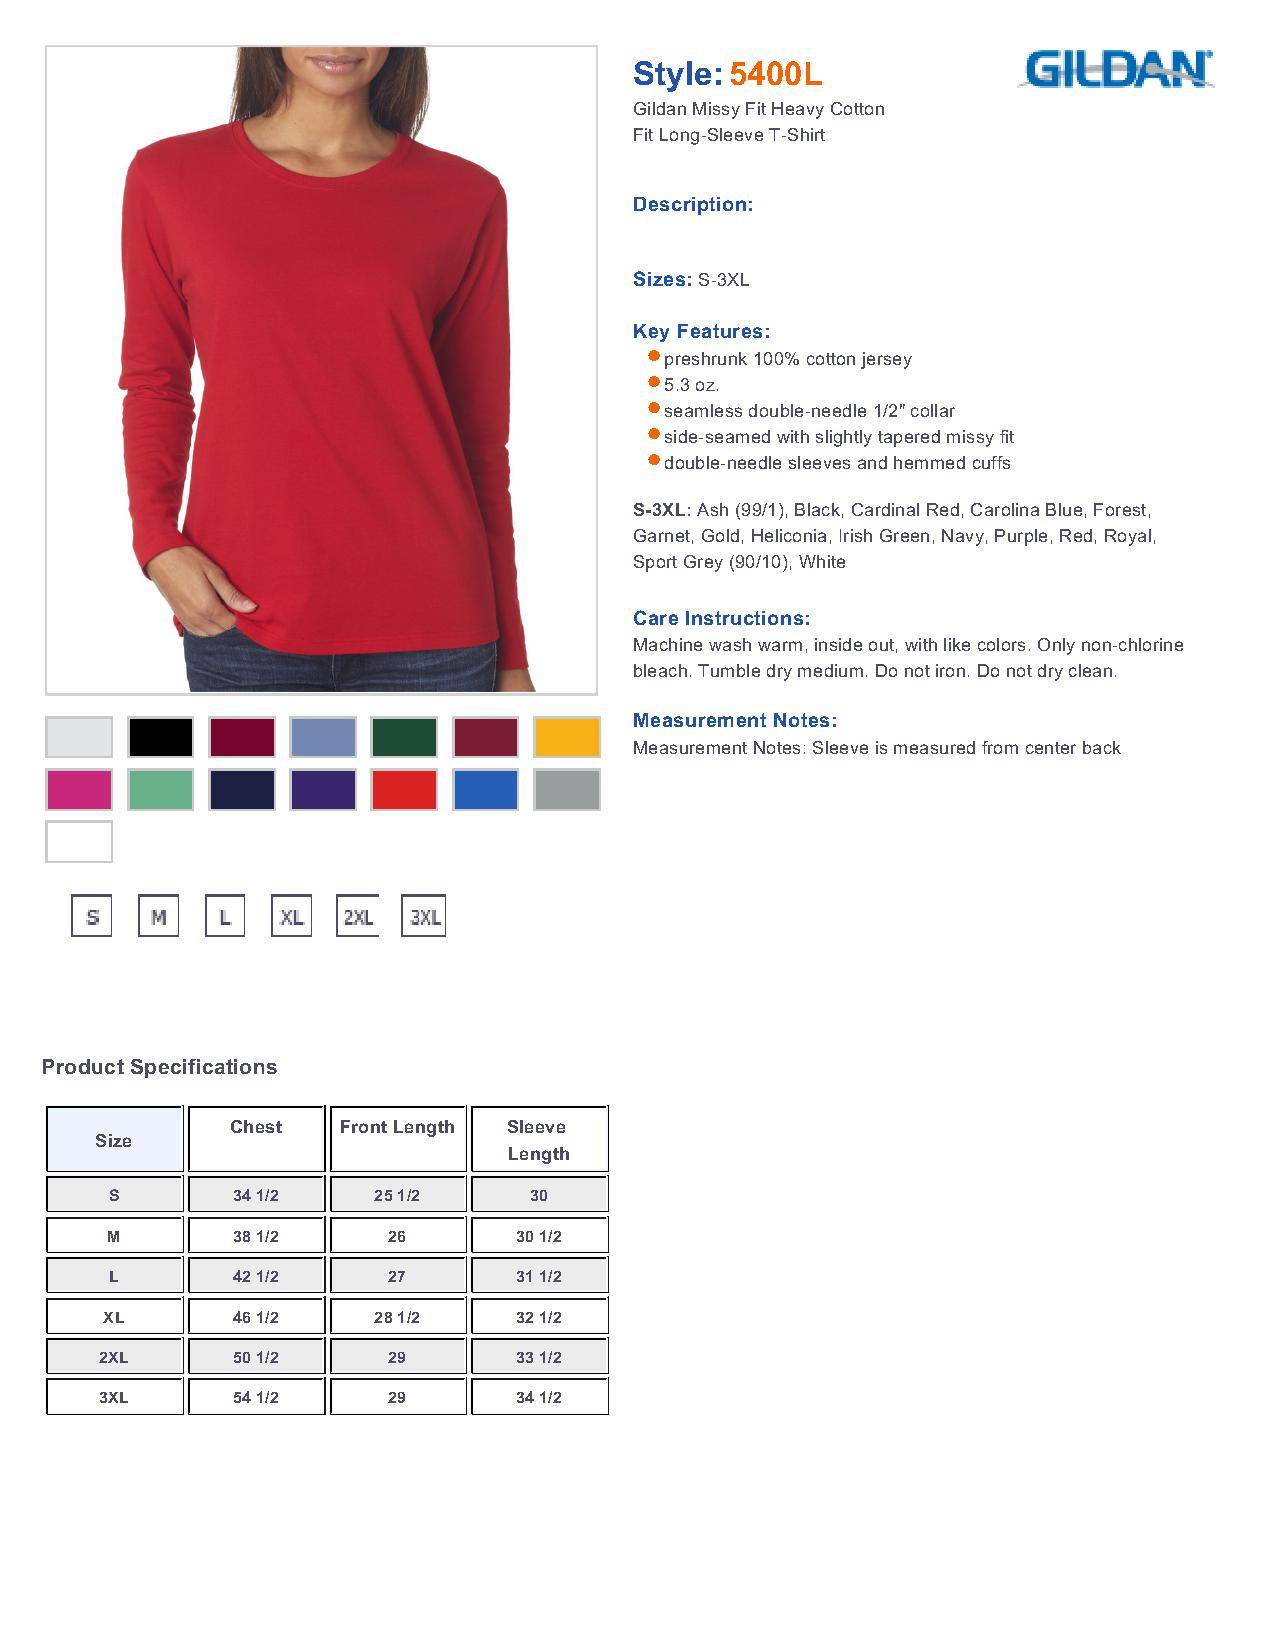 Gildan color chart aol image search results nvjuhfo Images